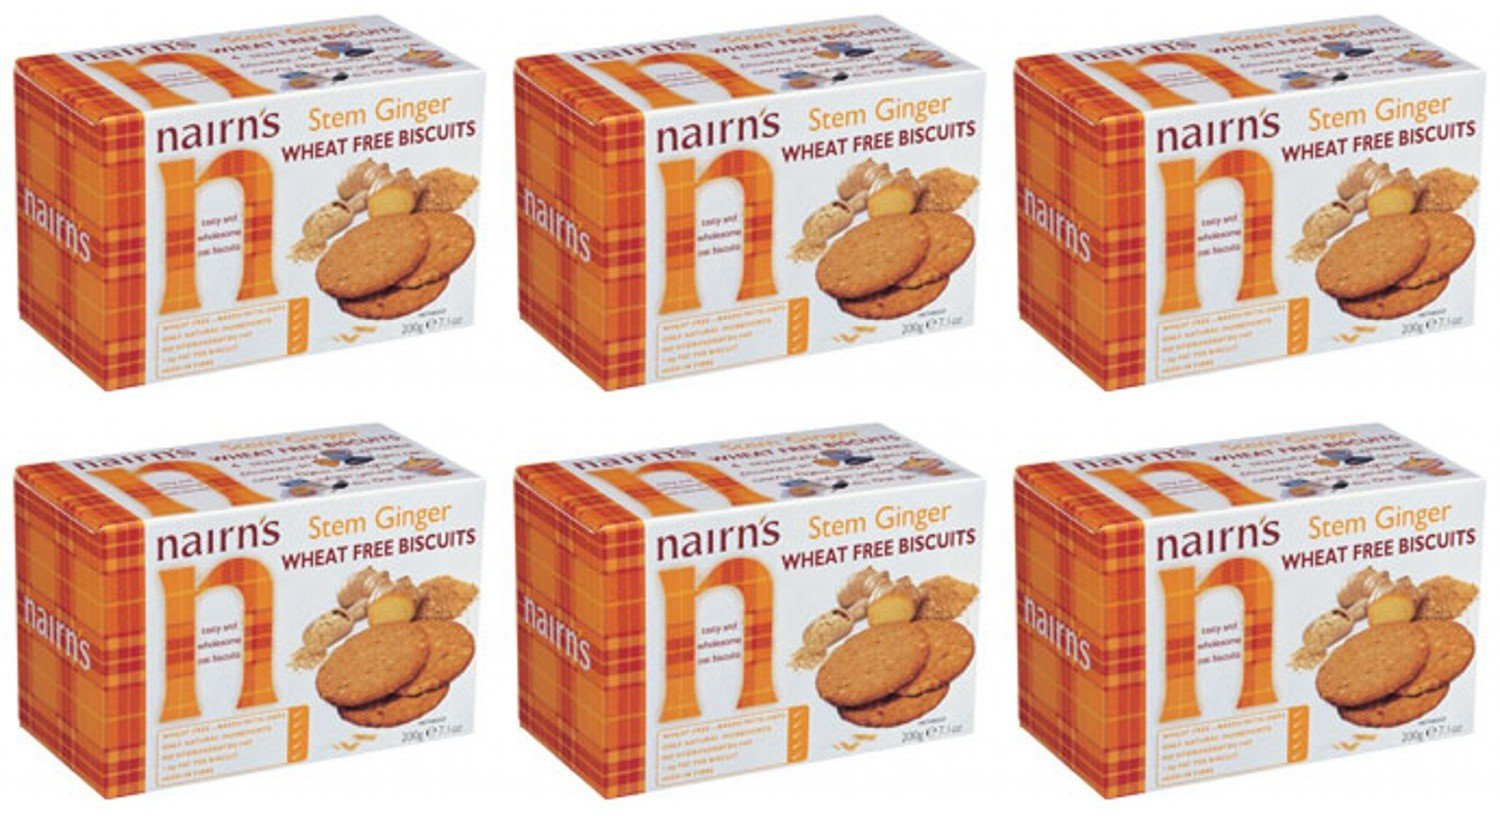 (2 Pack) - Nairns - Stem Ginger Wheat Free Biscuit | 200g | 2 PACK BUNDLE